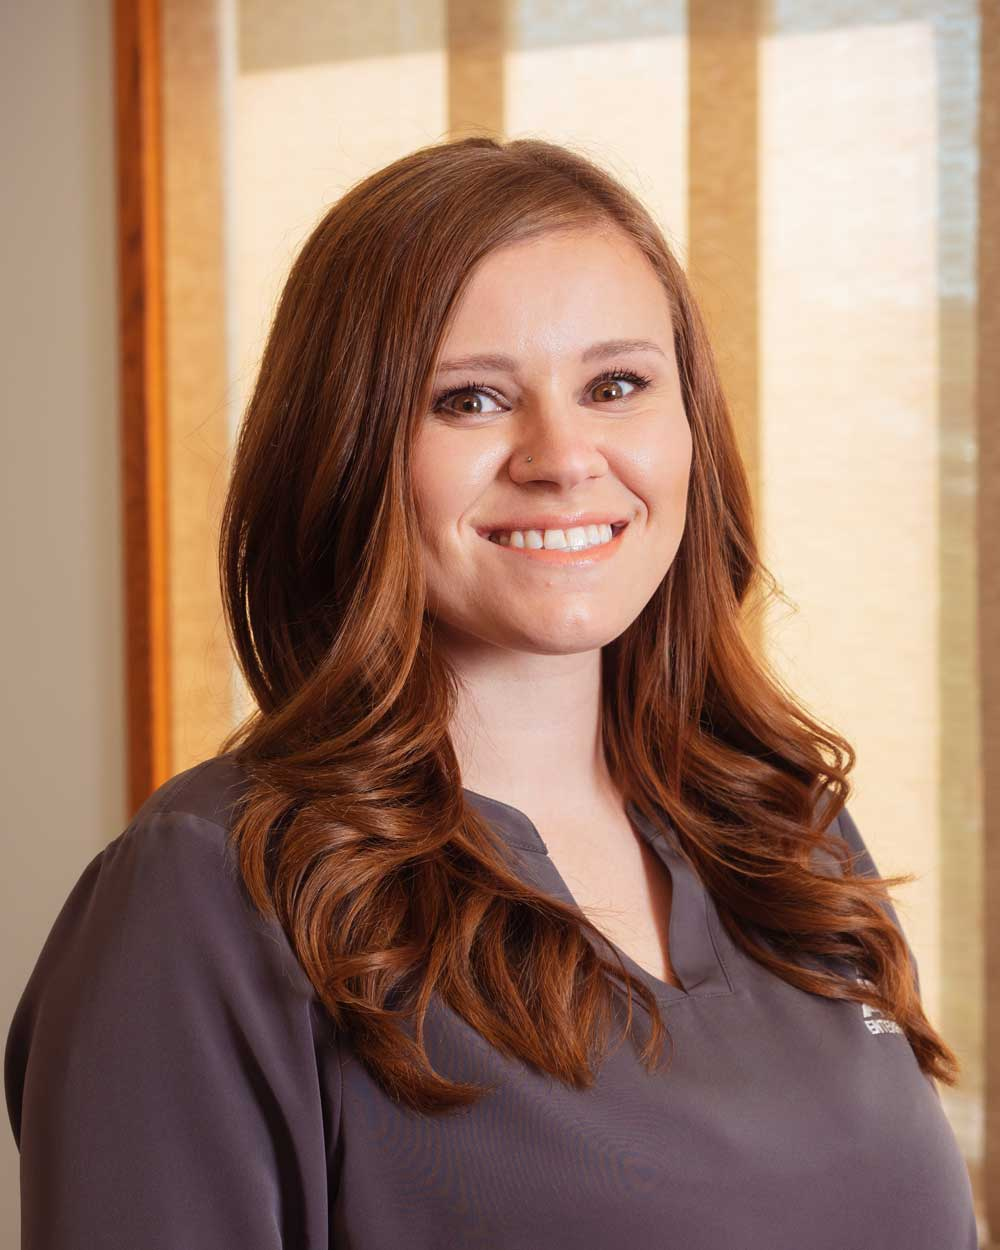 Beth Buehrer, Human Resources/Compliance Manager